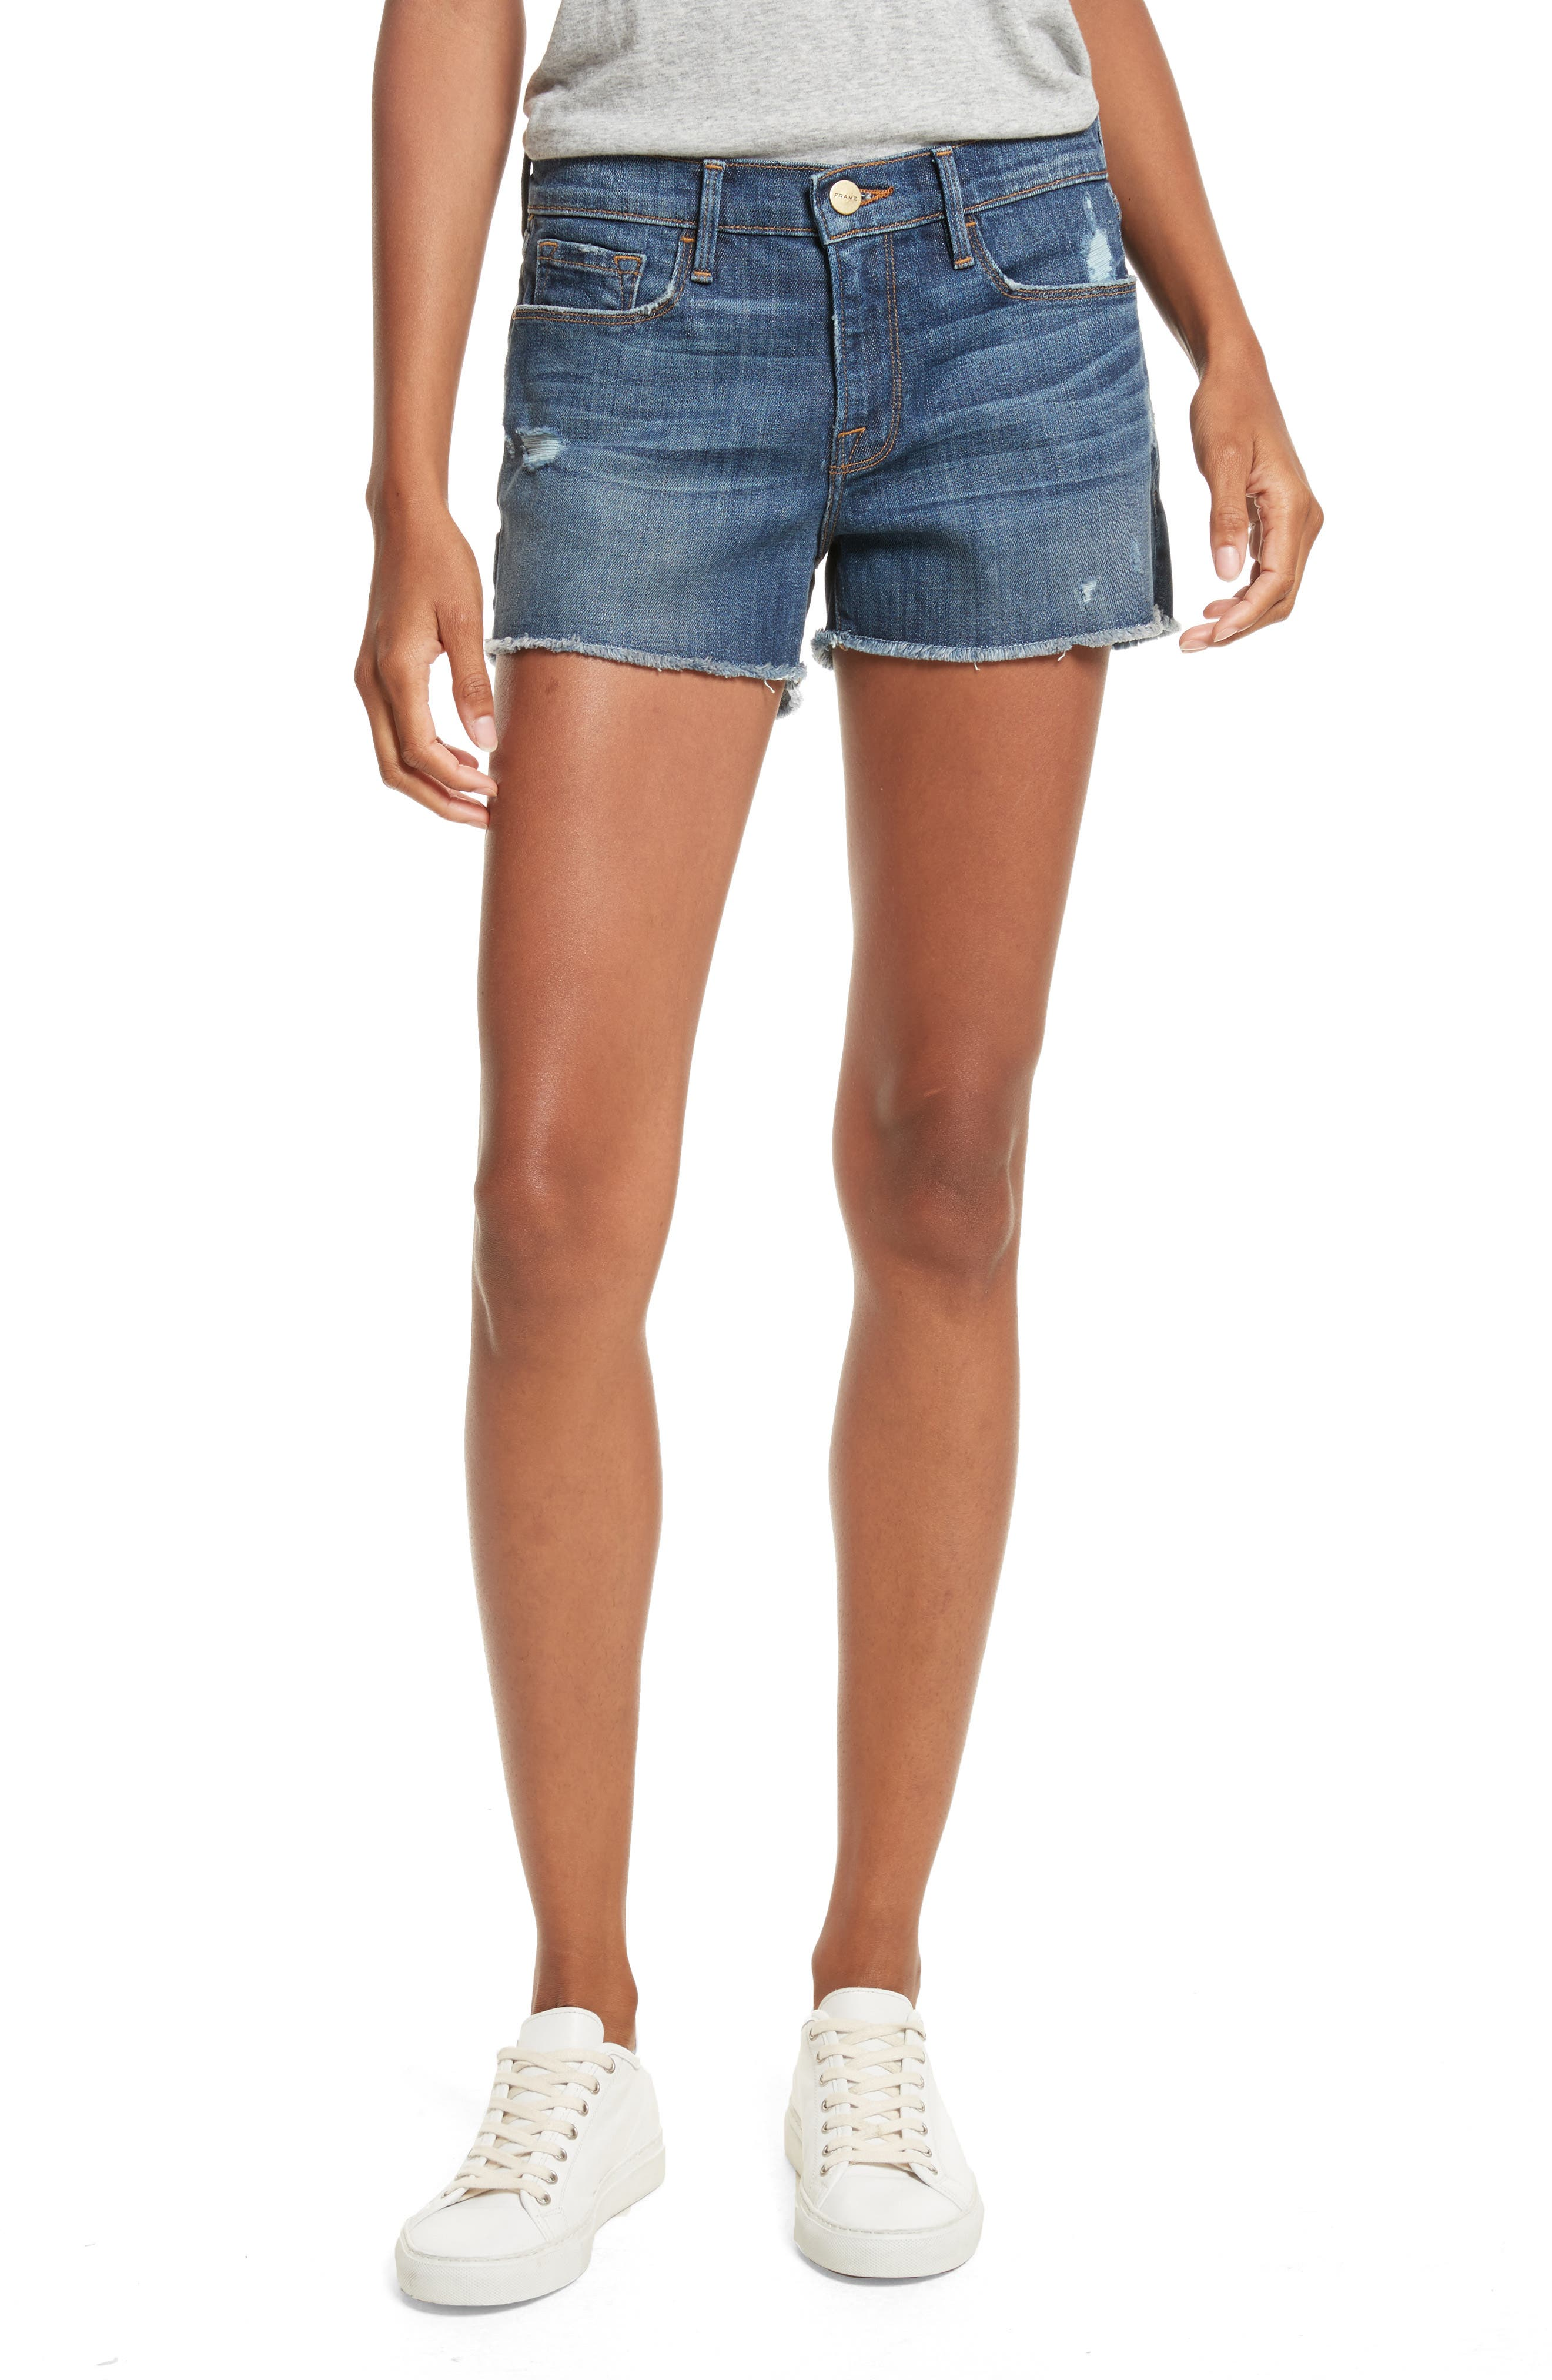 Le Cutoff Denim Shorts,                             Main thumbnail 1, color,                             Eckford